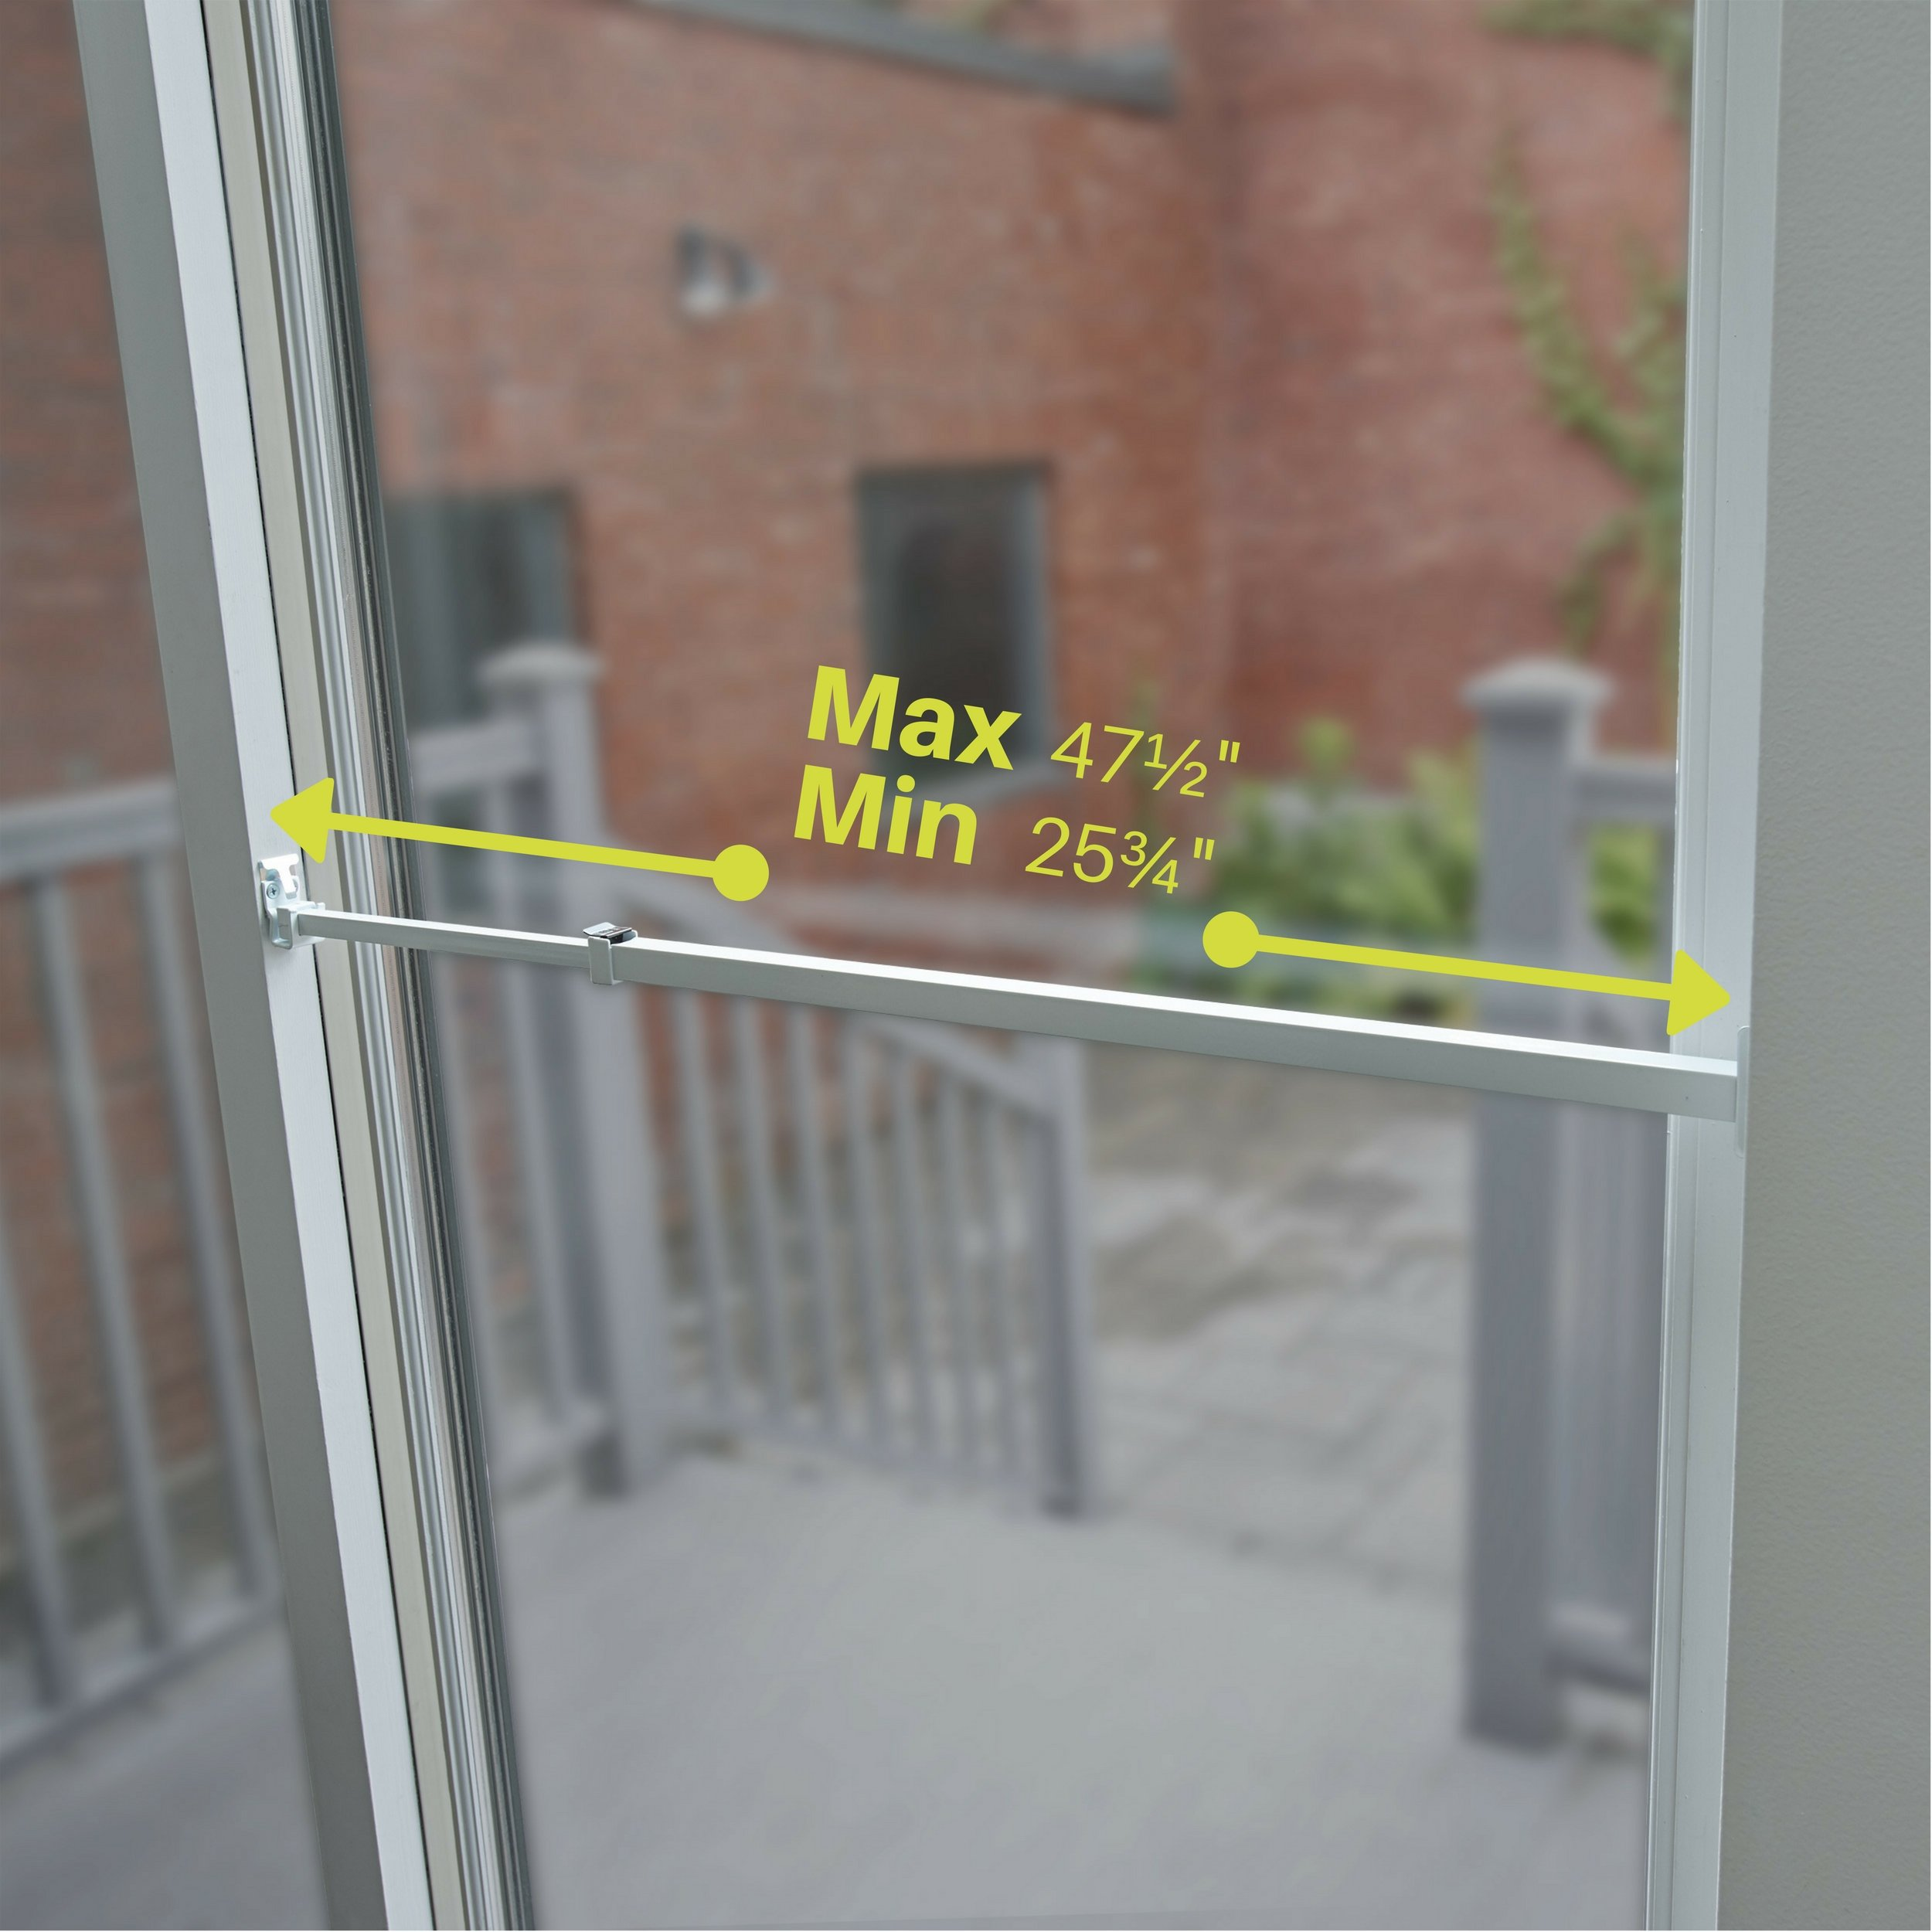 Ideal Security SK110 Patio Door Security Bar with Child-Proof Lock, Adjustable 25-48 inches for Ventilation, White by Ideal Security Inc. (Image #5)